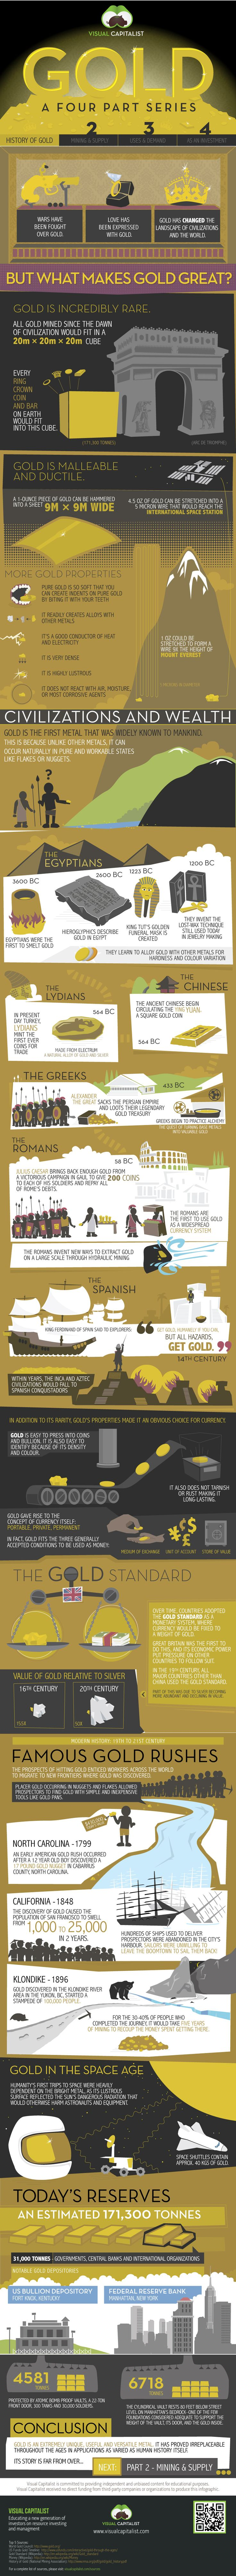 "Excellent infographic shows how the ""barbarous relic"" gave rise to civilization."